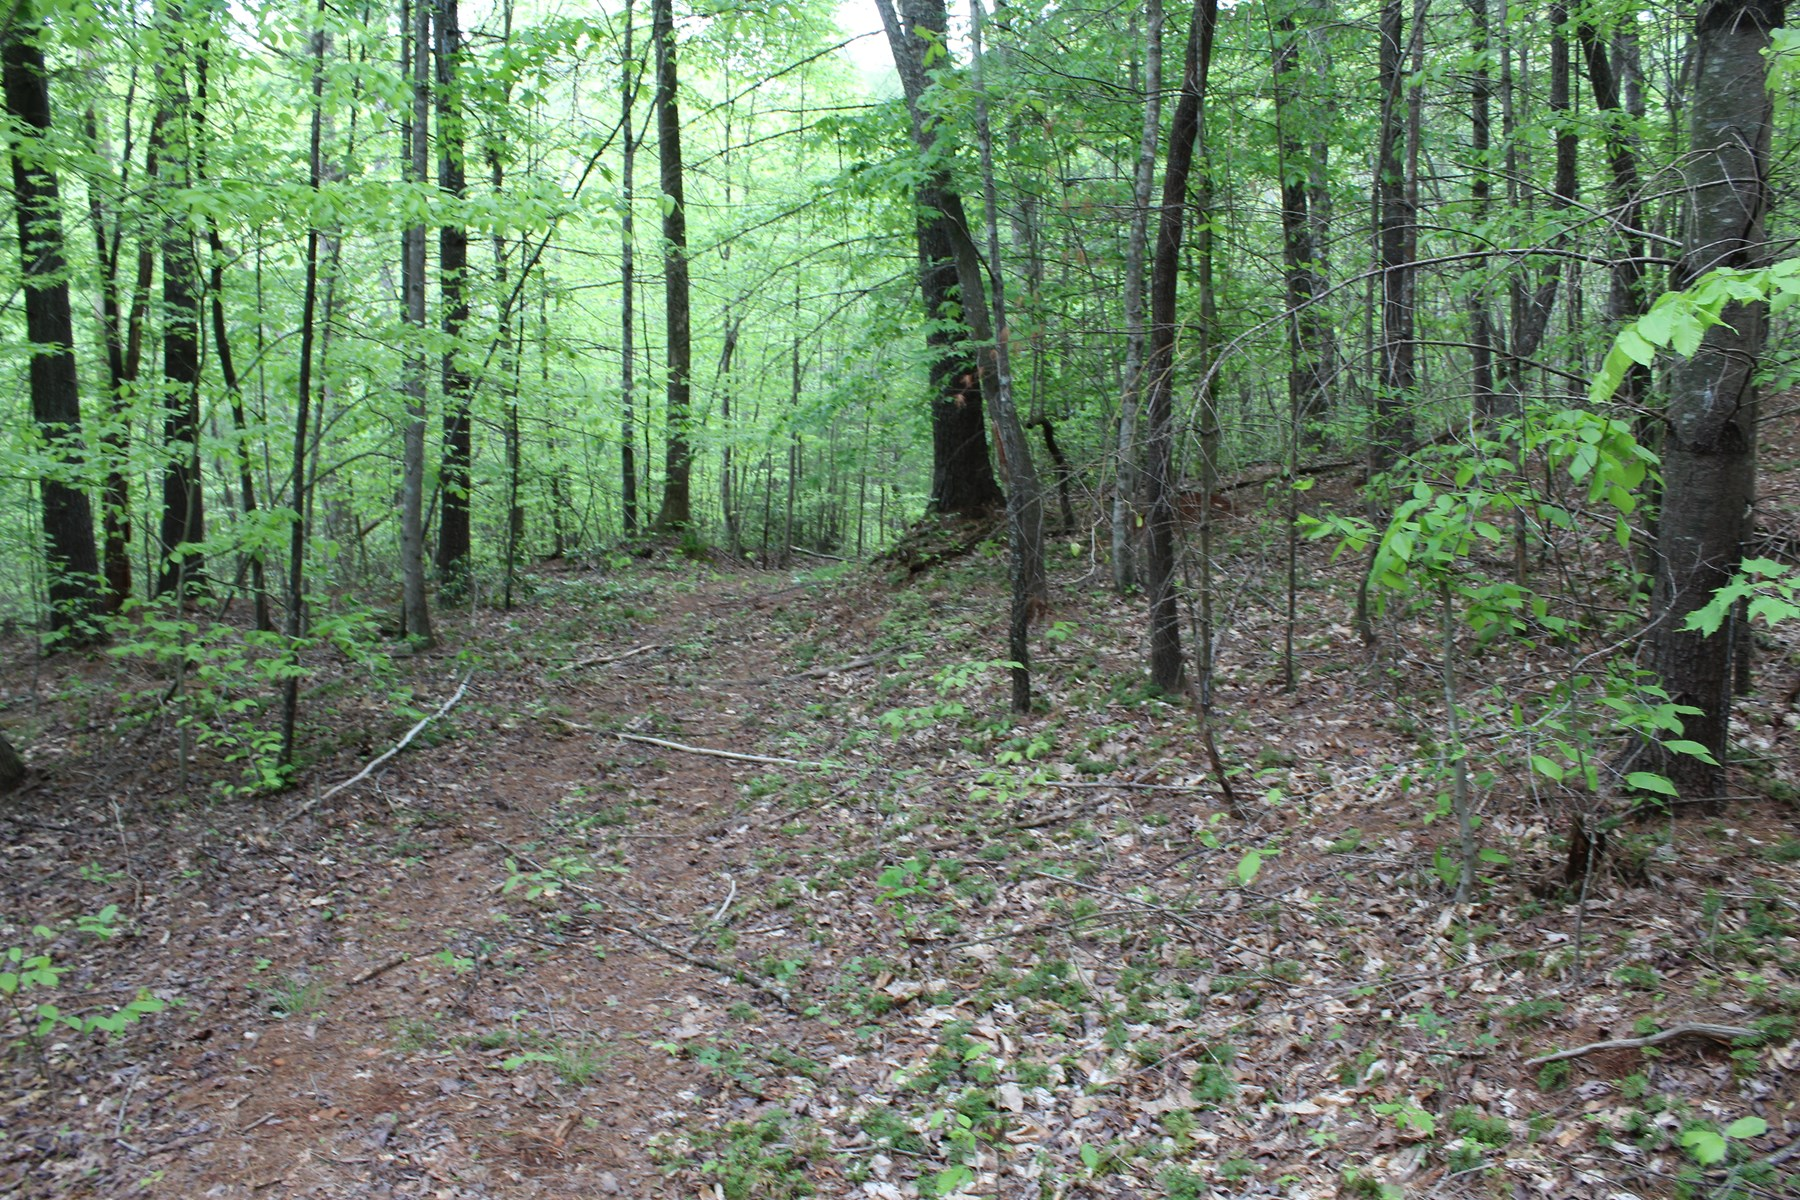 80.57 ACRES OF LAND LOCATED IN PATRICK COUNTY, VIRGINIA